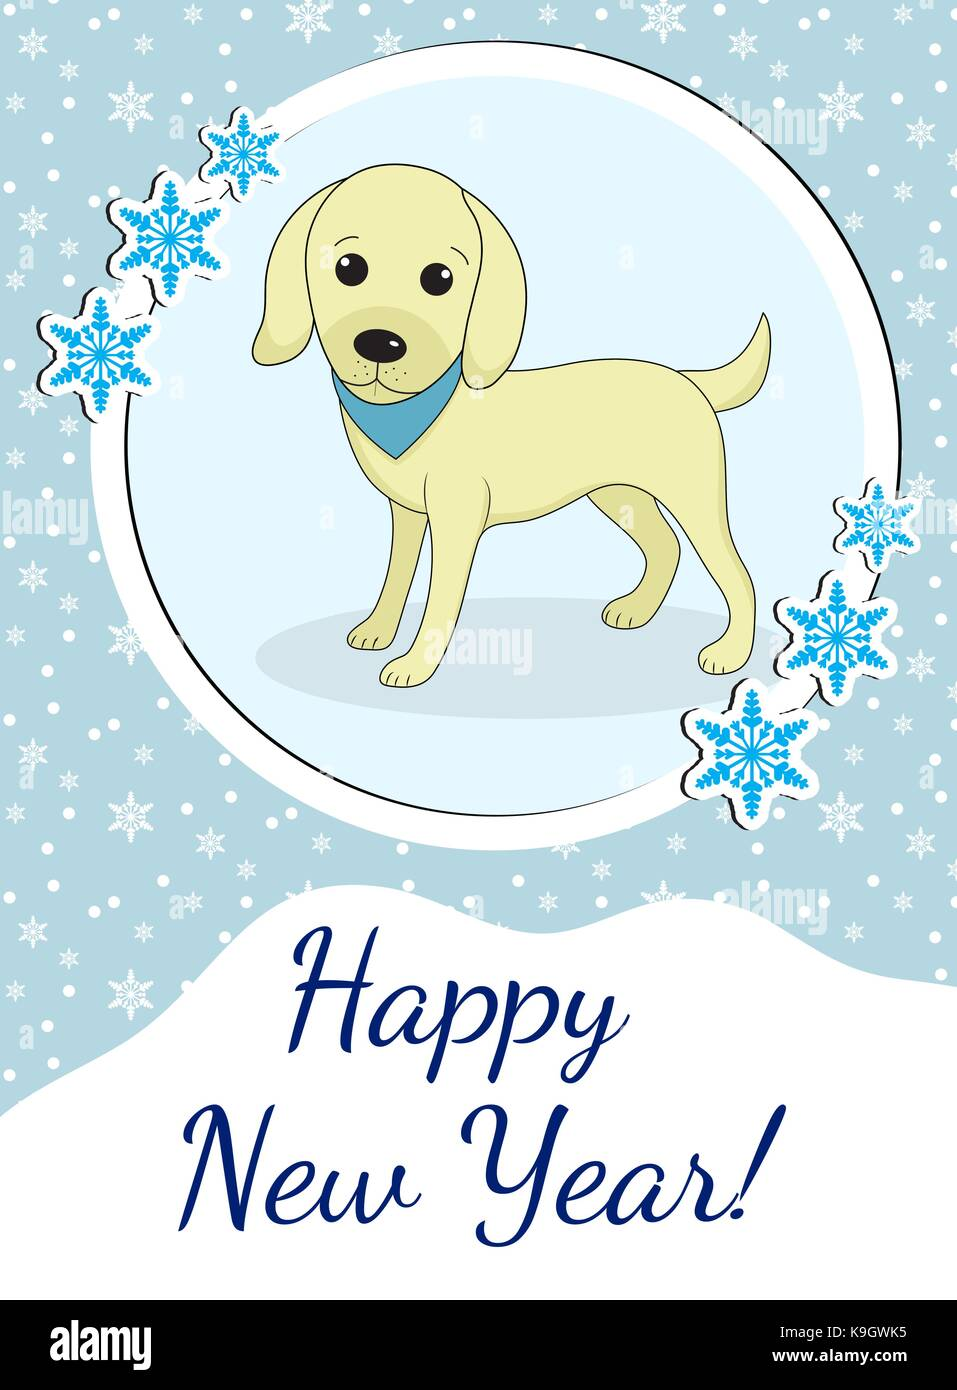 Happy New Year Greeting Card Stock Photos Happy New Year Greeting